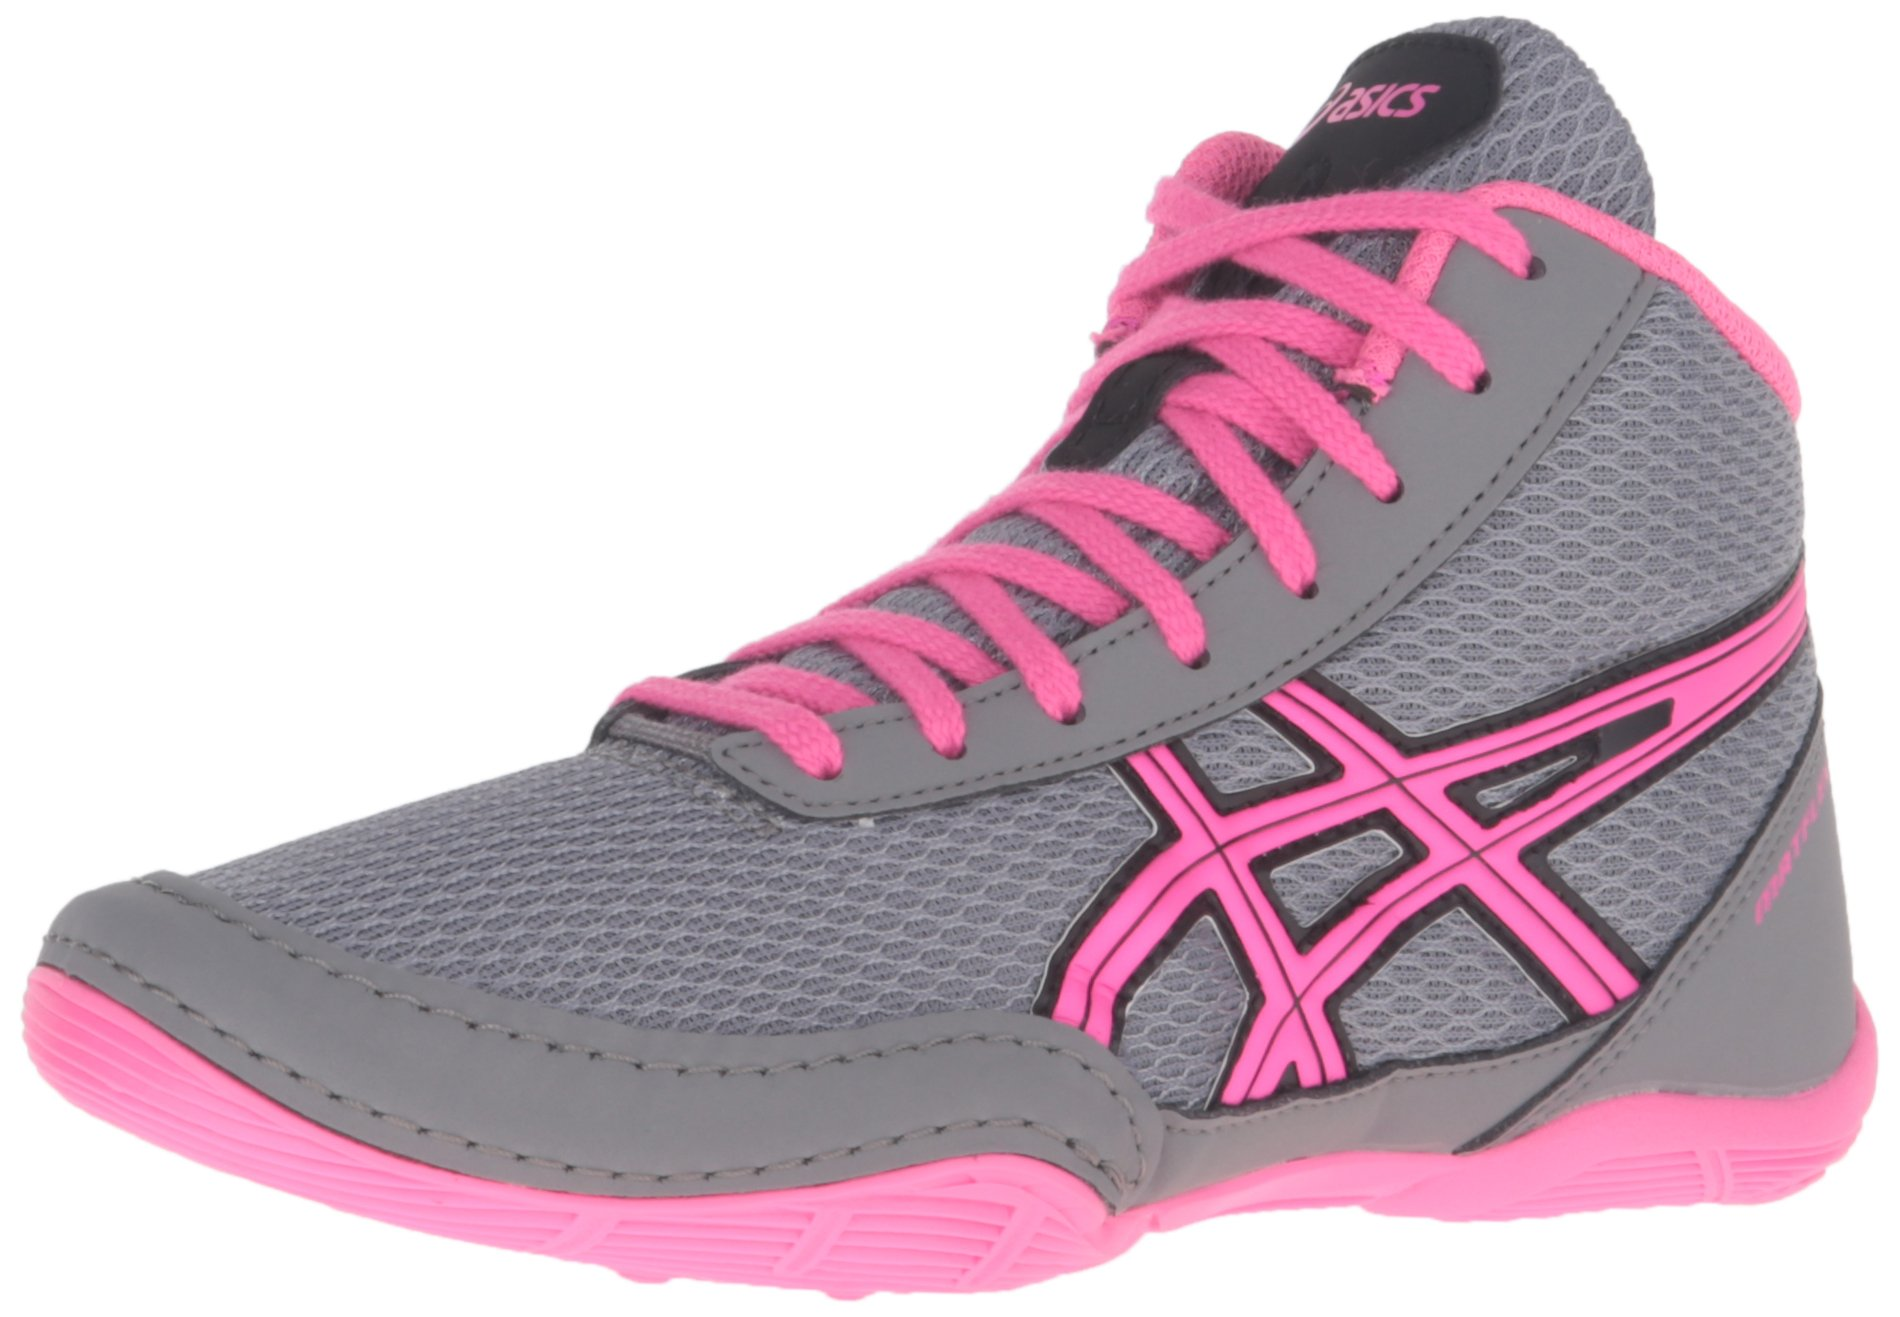 ASICS Matflex 5 GS Skate Shoe (Little Kid/Big Kid), Aluminum/Hot Pink/Black, 1 by ASICS